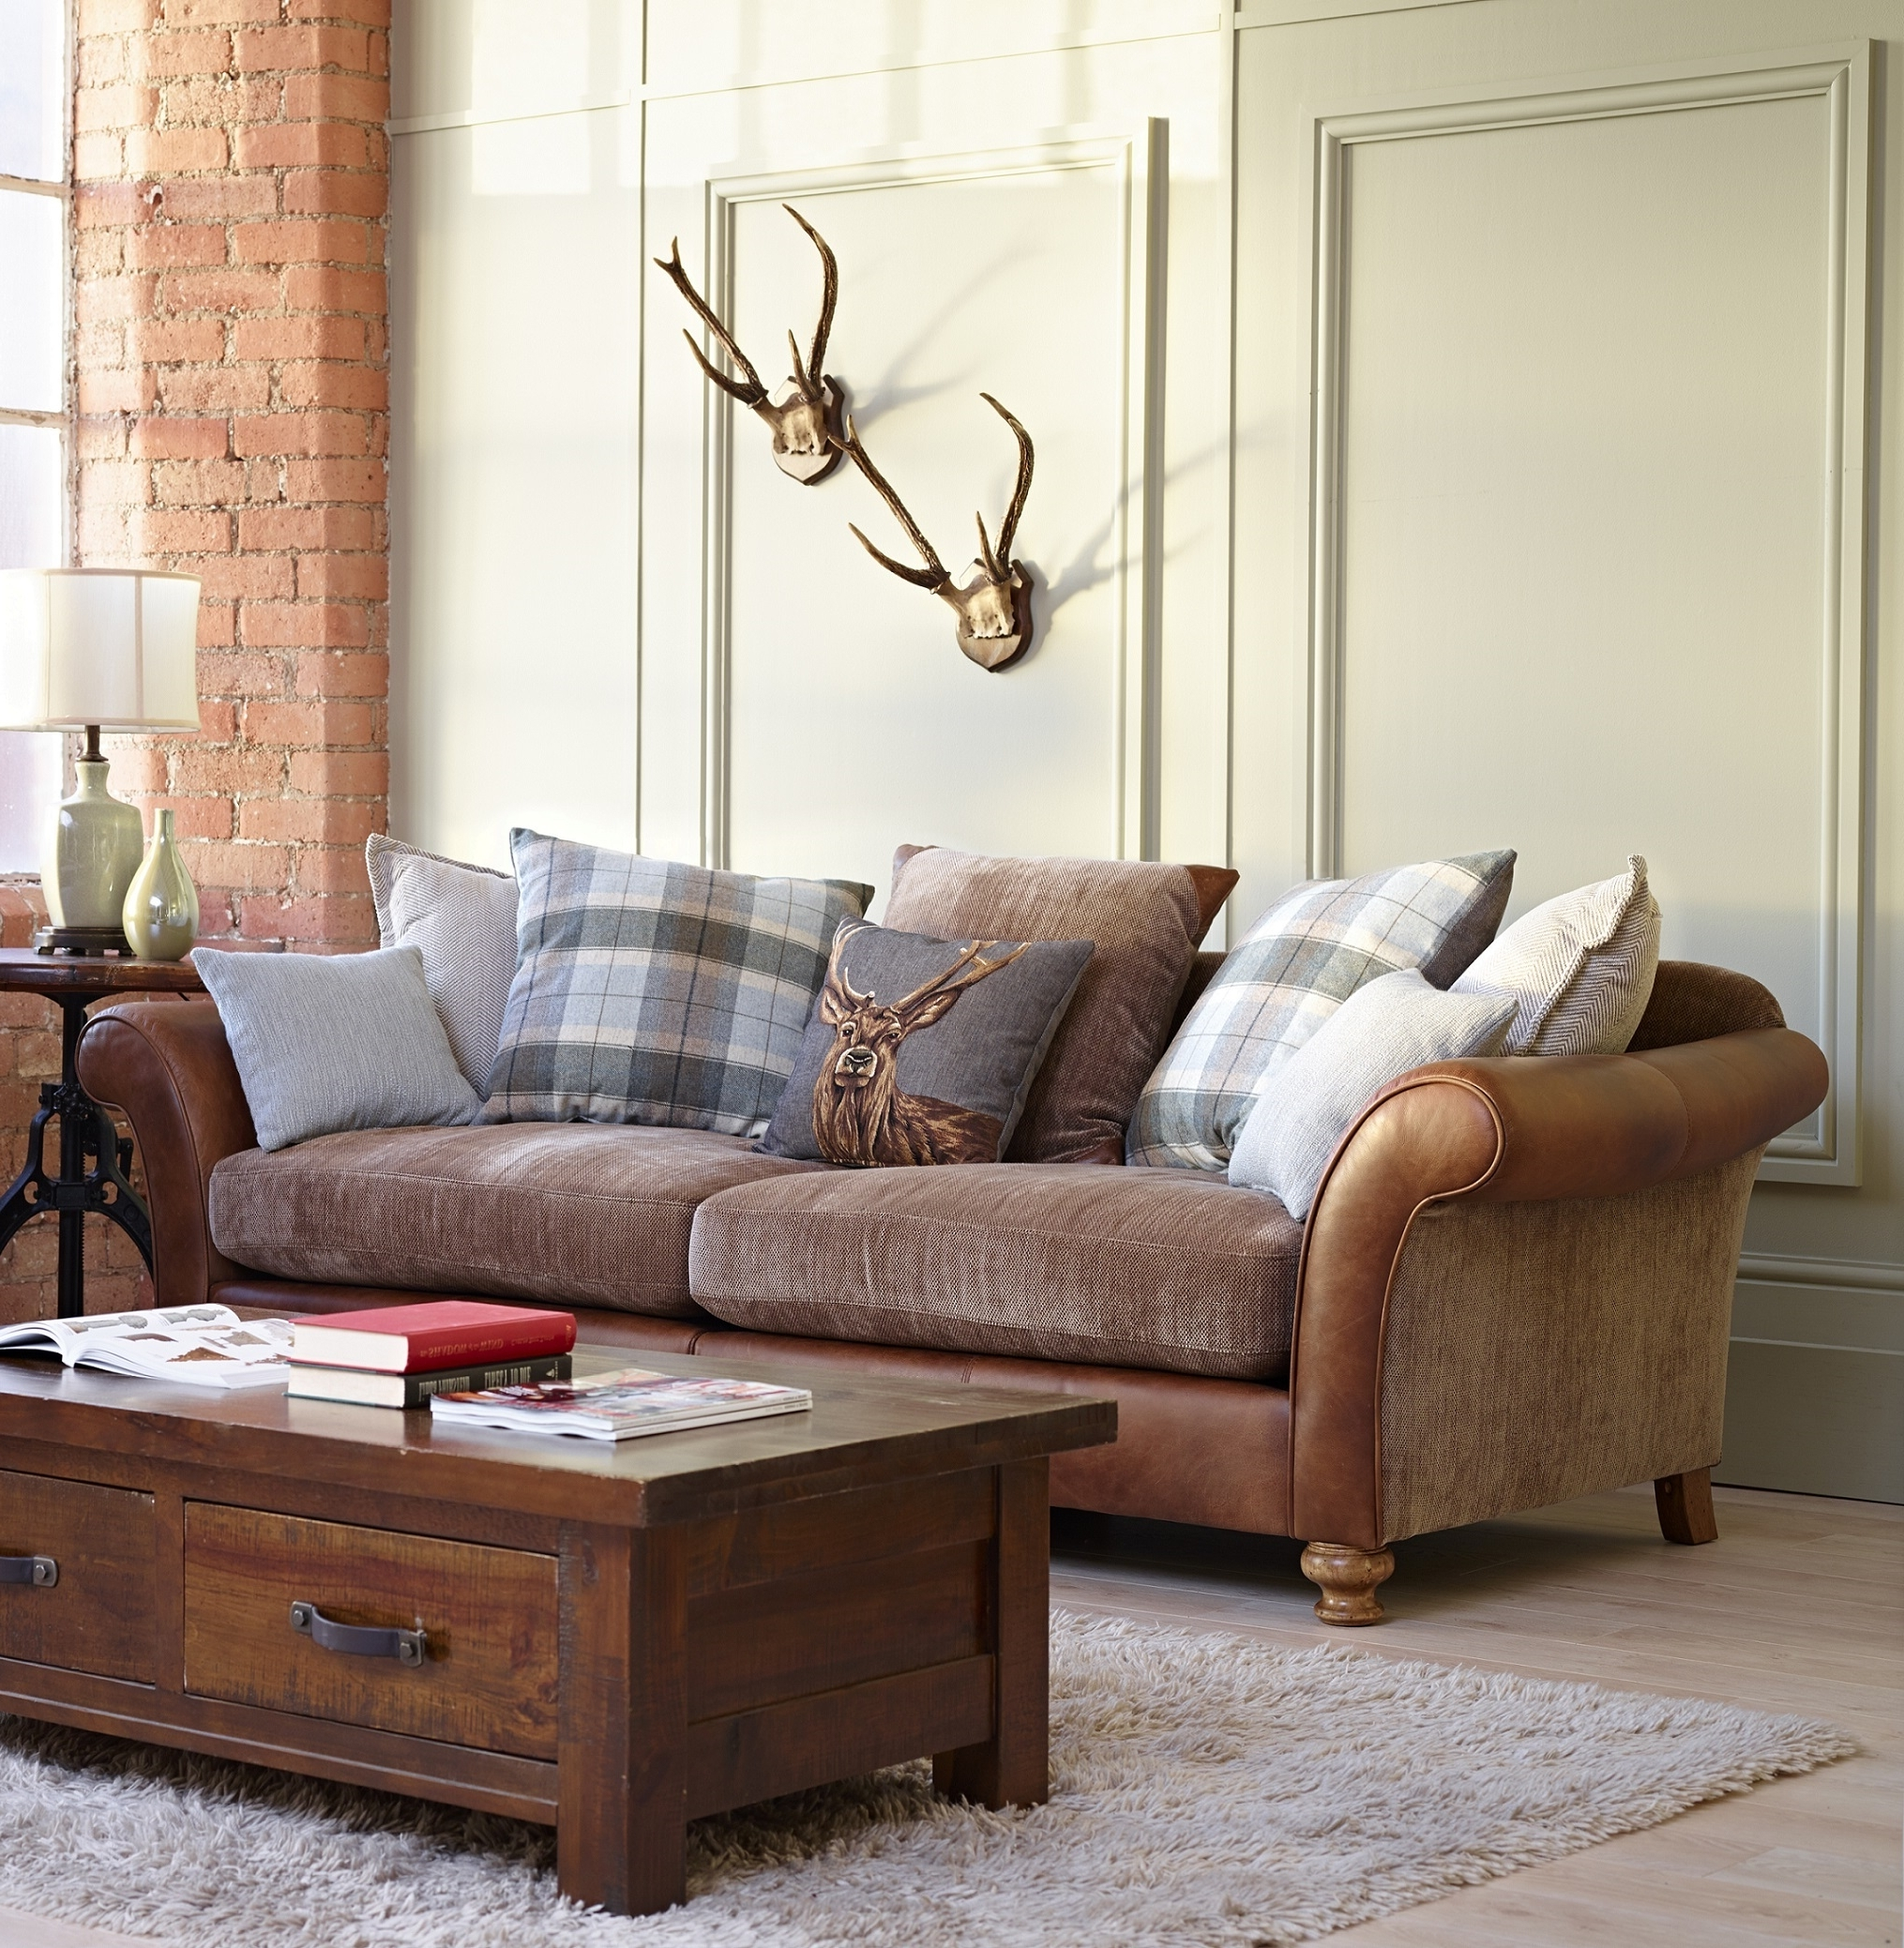 Most Current Popular Leather And Cloth Sofa Fabric Sets Sofas Uk Mix Can You Pertaining To Leather And Cloth Sofas (View 12 of 15)